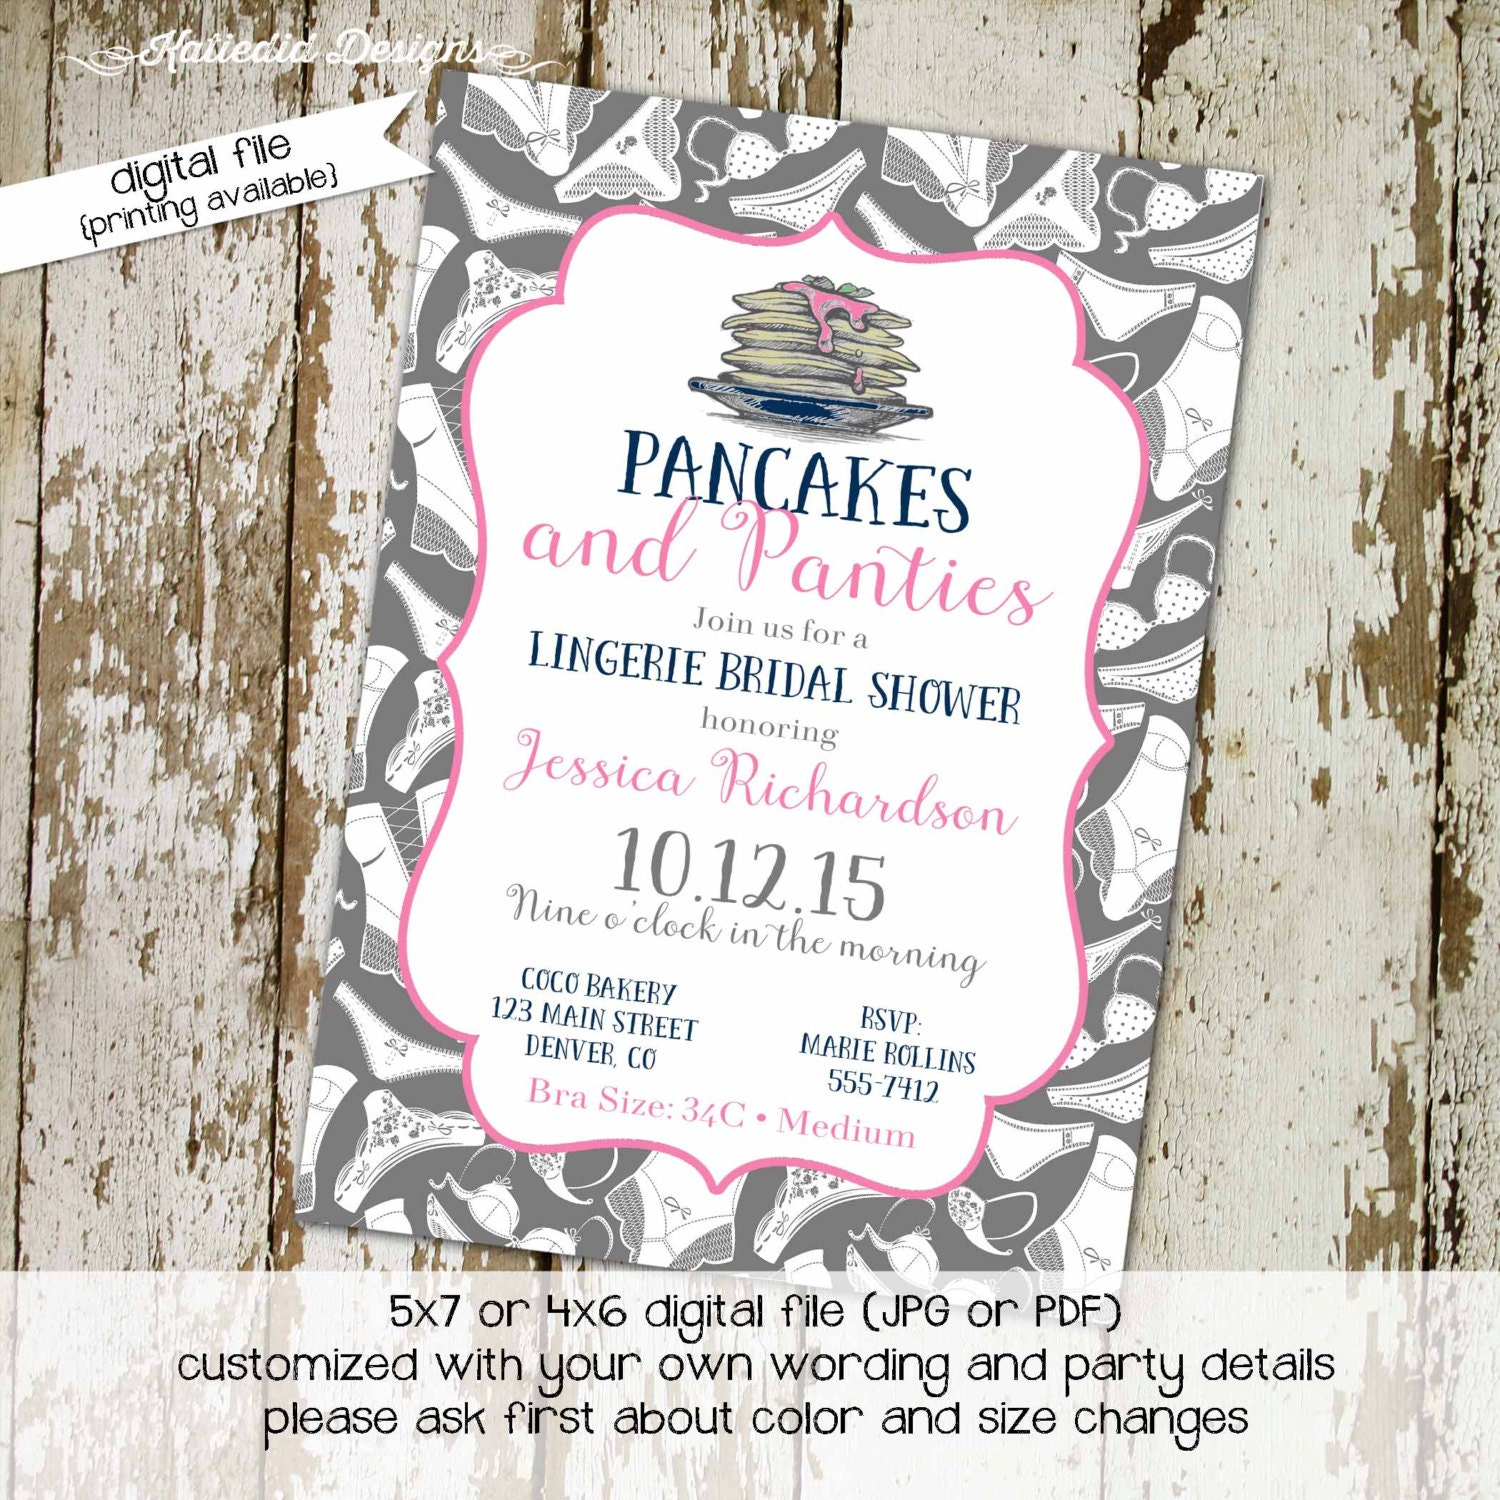 bridal shower invitation pancakes and panties lingerie panty – Pancake Party Invitations